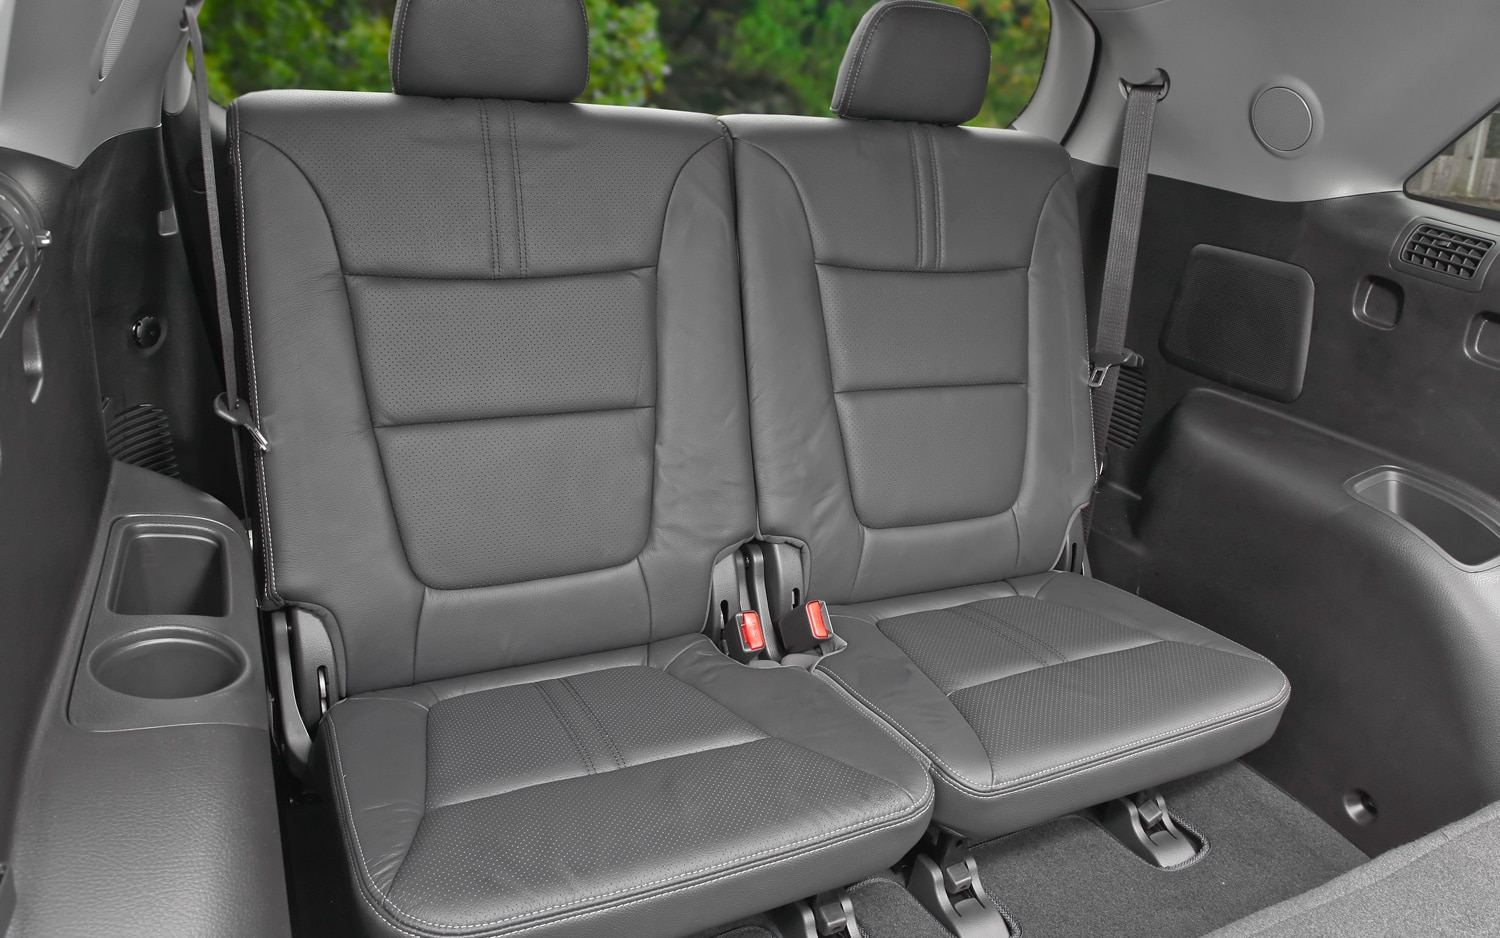 2012 Kia Sorento Rear Seating 3